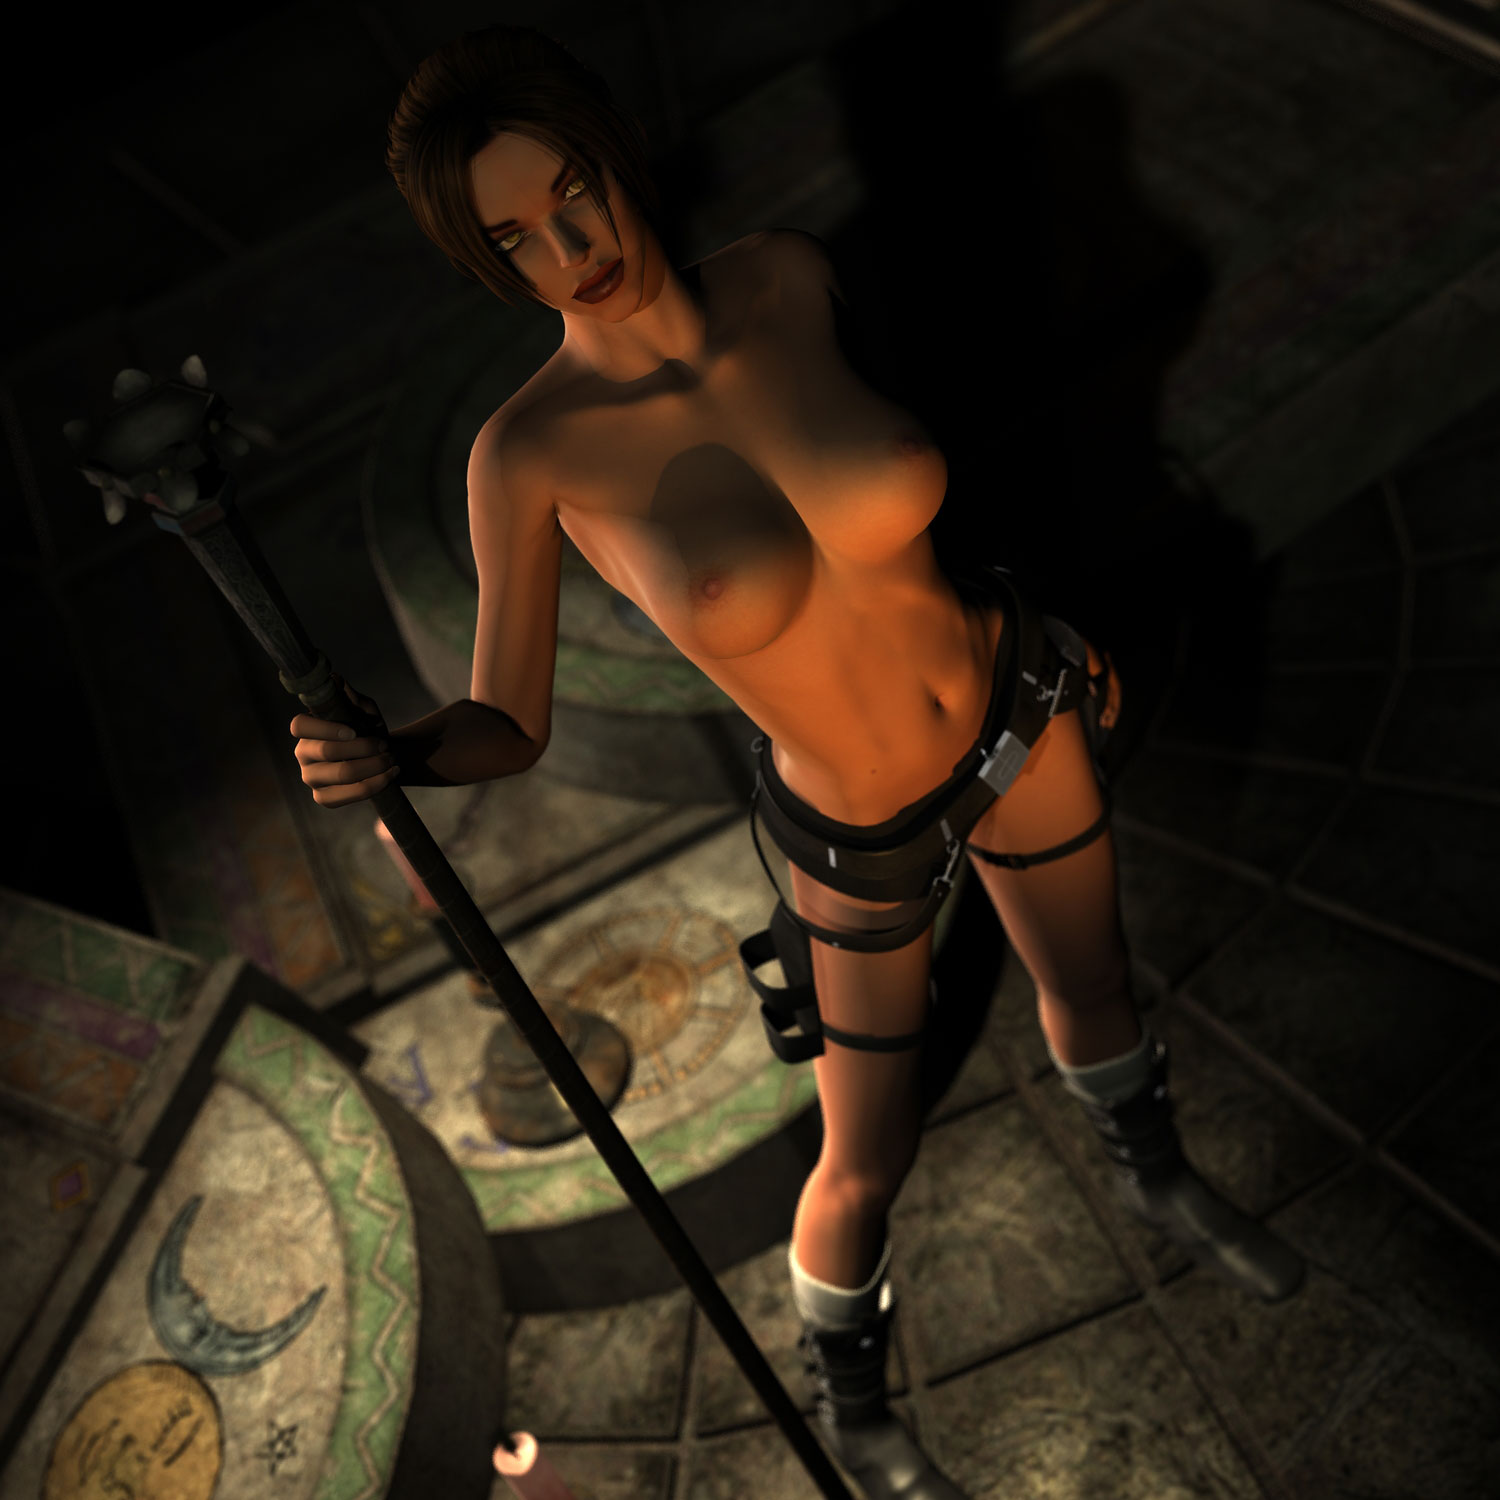 Tomb raider boobs nude animation erotic wifes